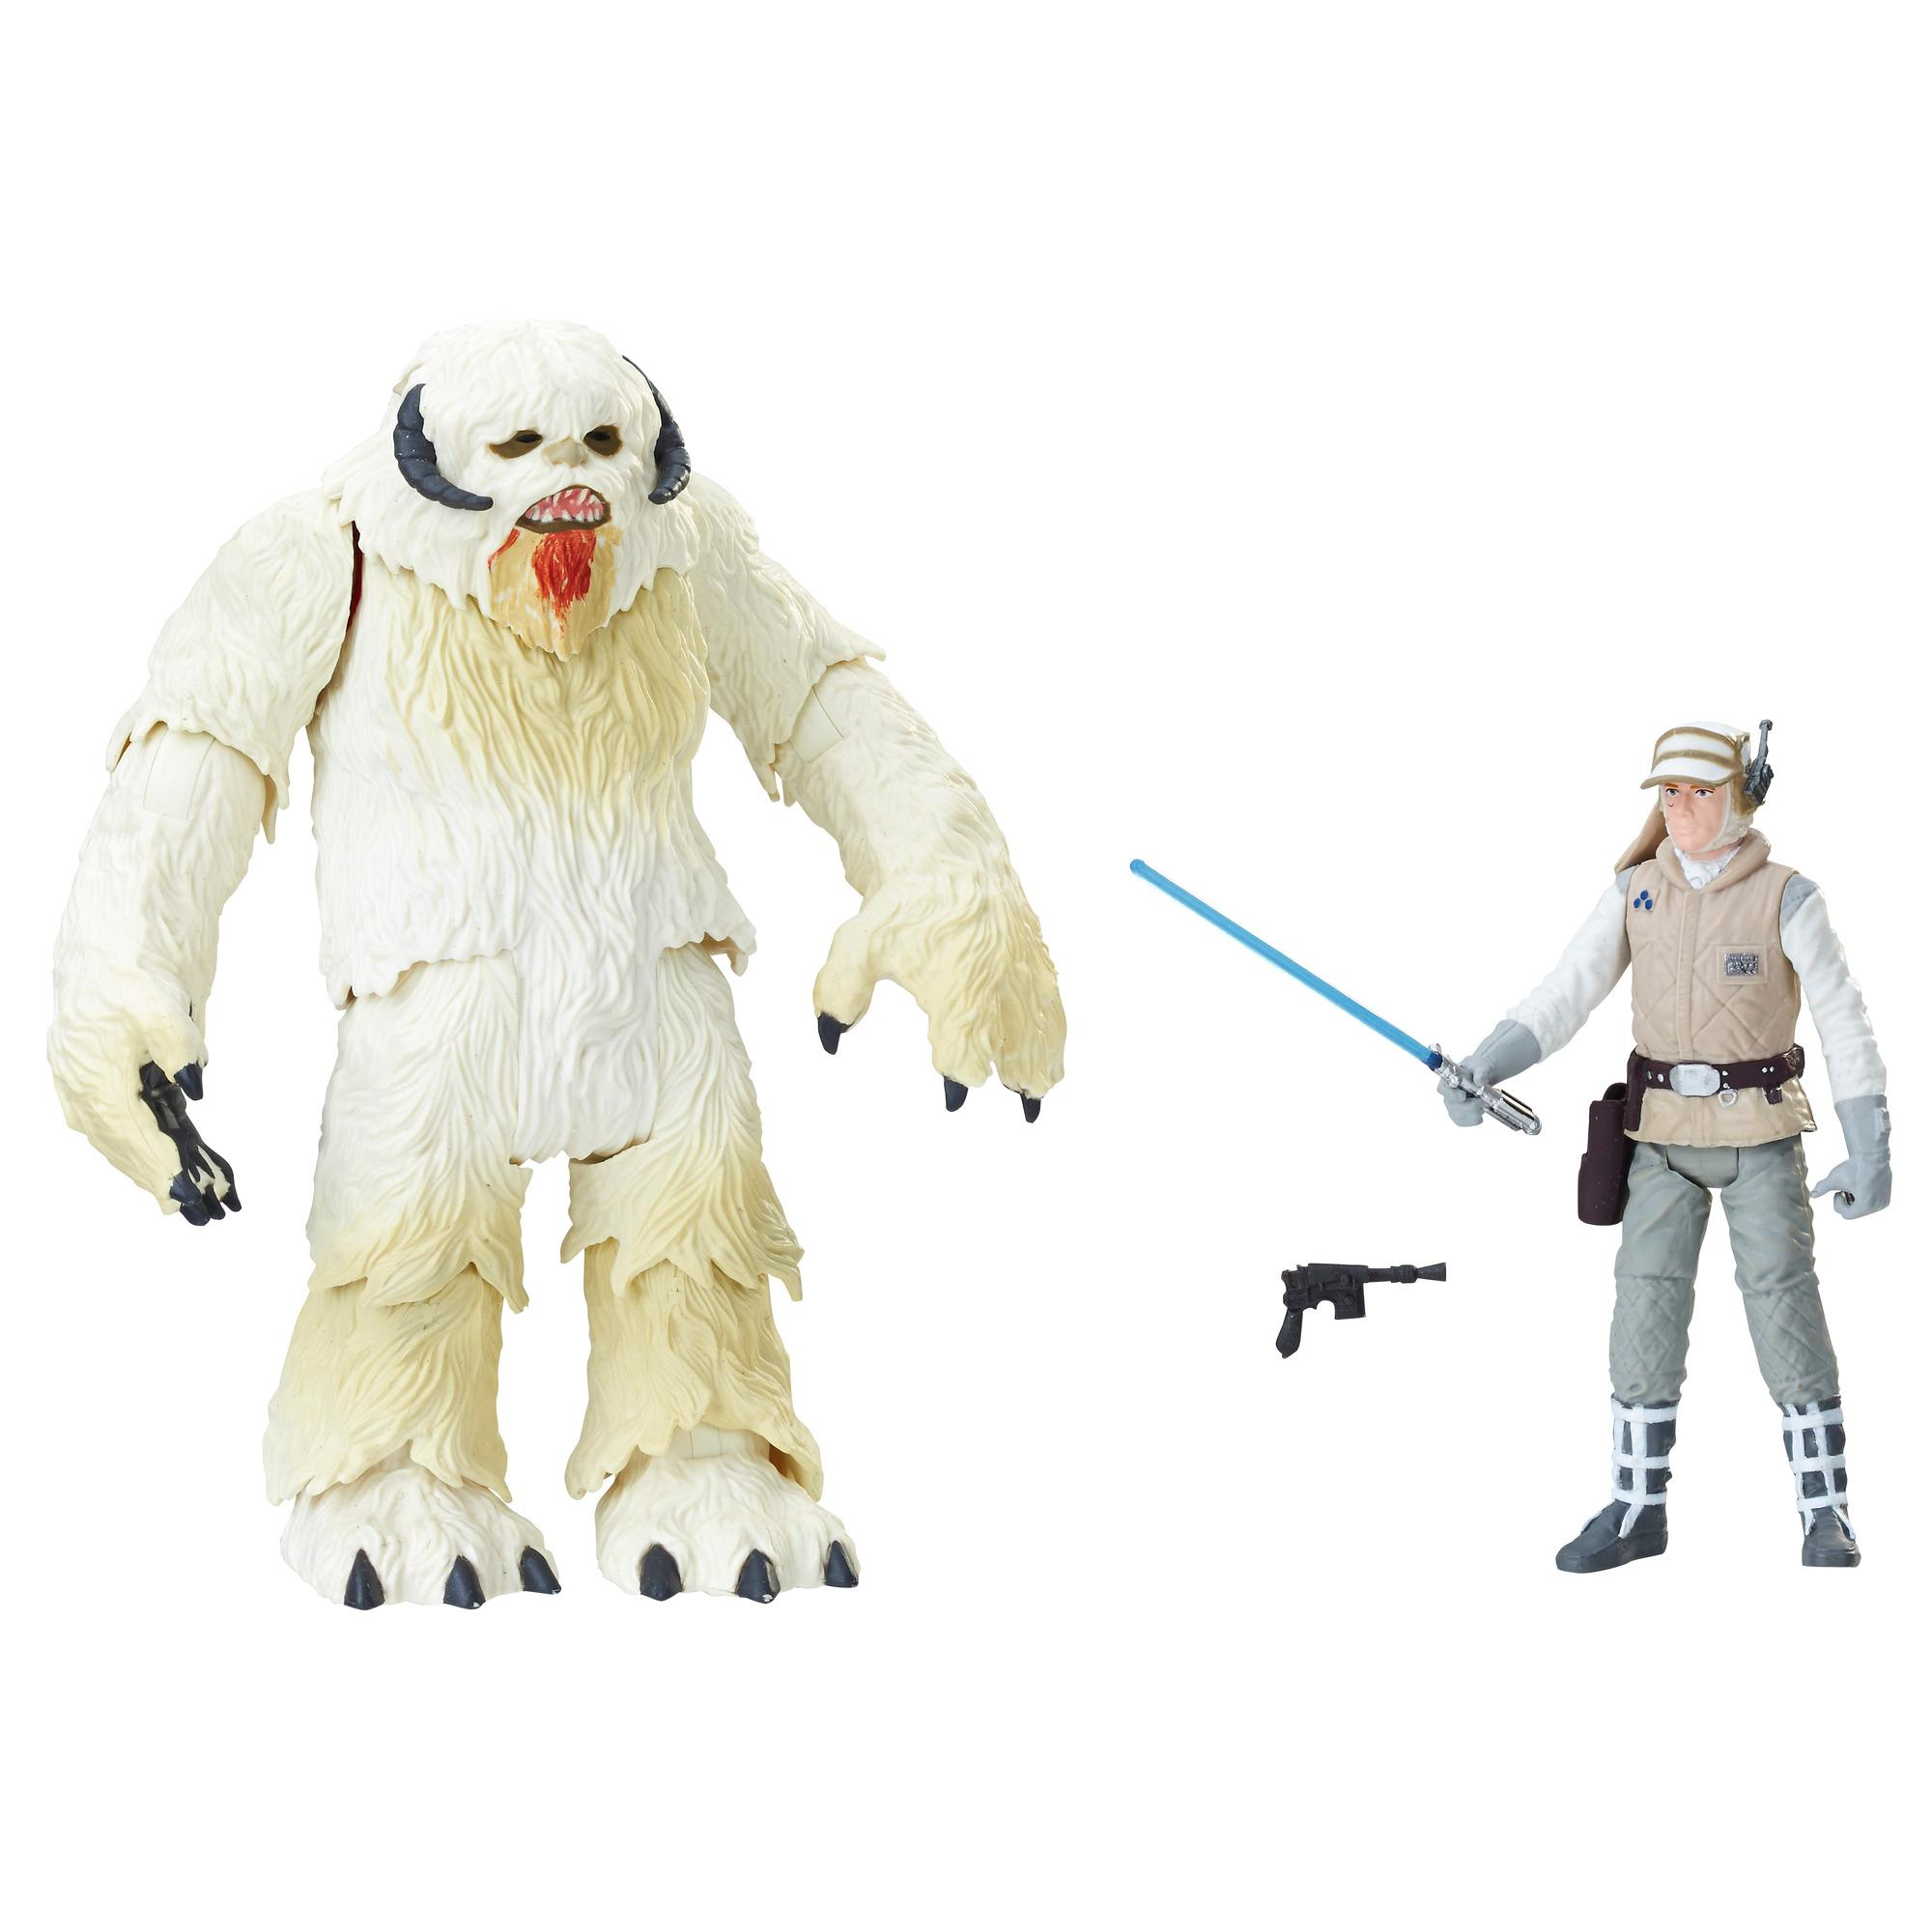 Star Wars Force Link 2.0 - Figuras de Wampa y Luke Skywalker (Hoth)